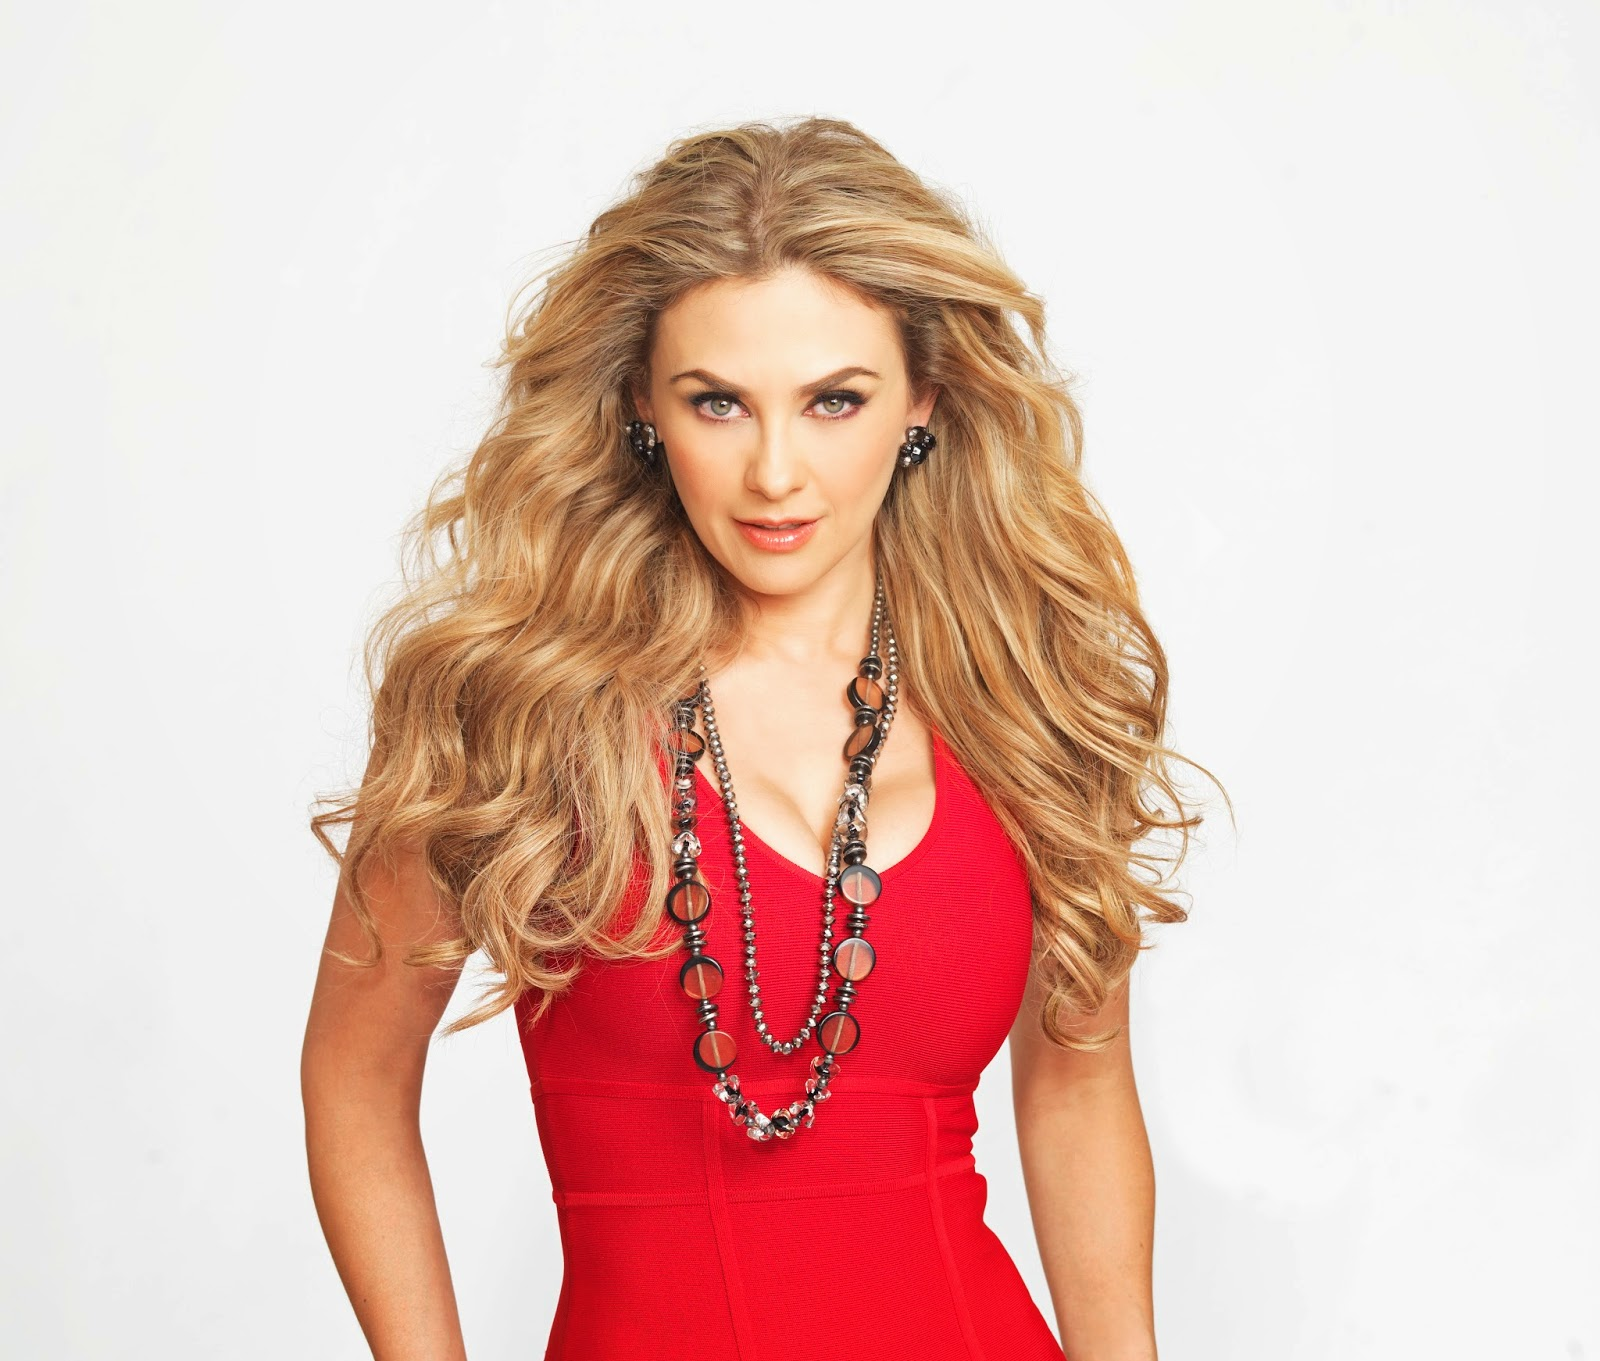 CELEBRITIES HD WALLPAPER DOWNLOAD: Aracely Arambula HD